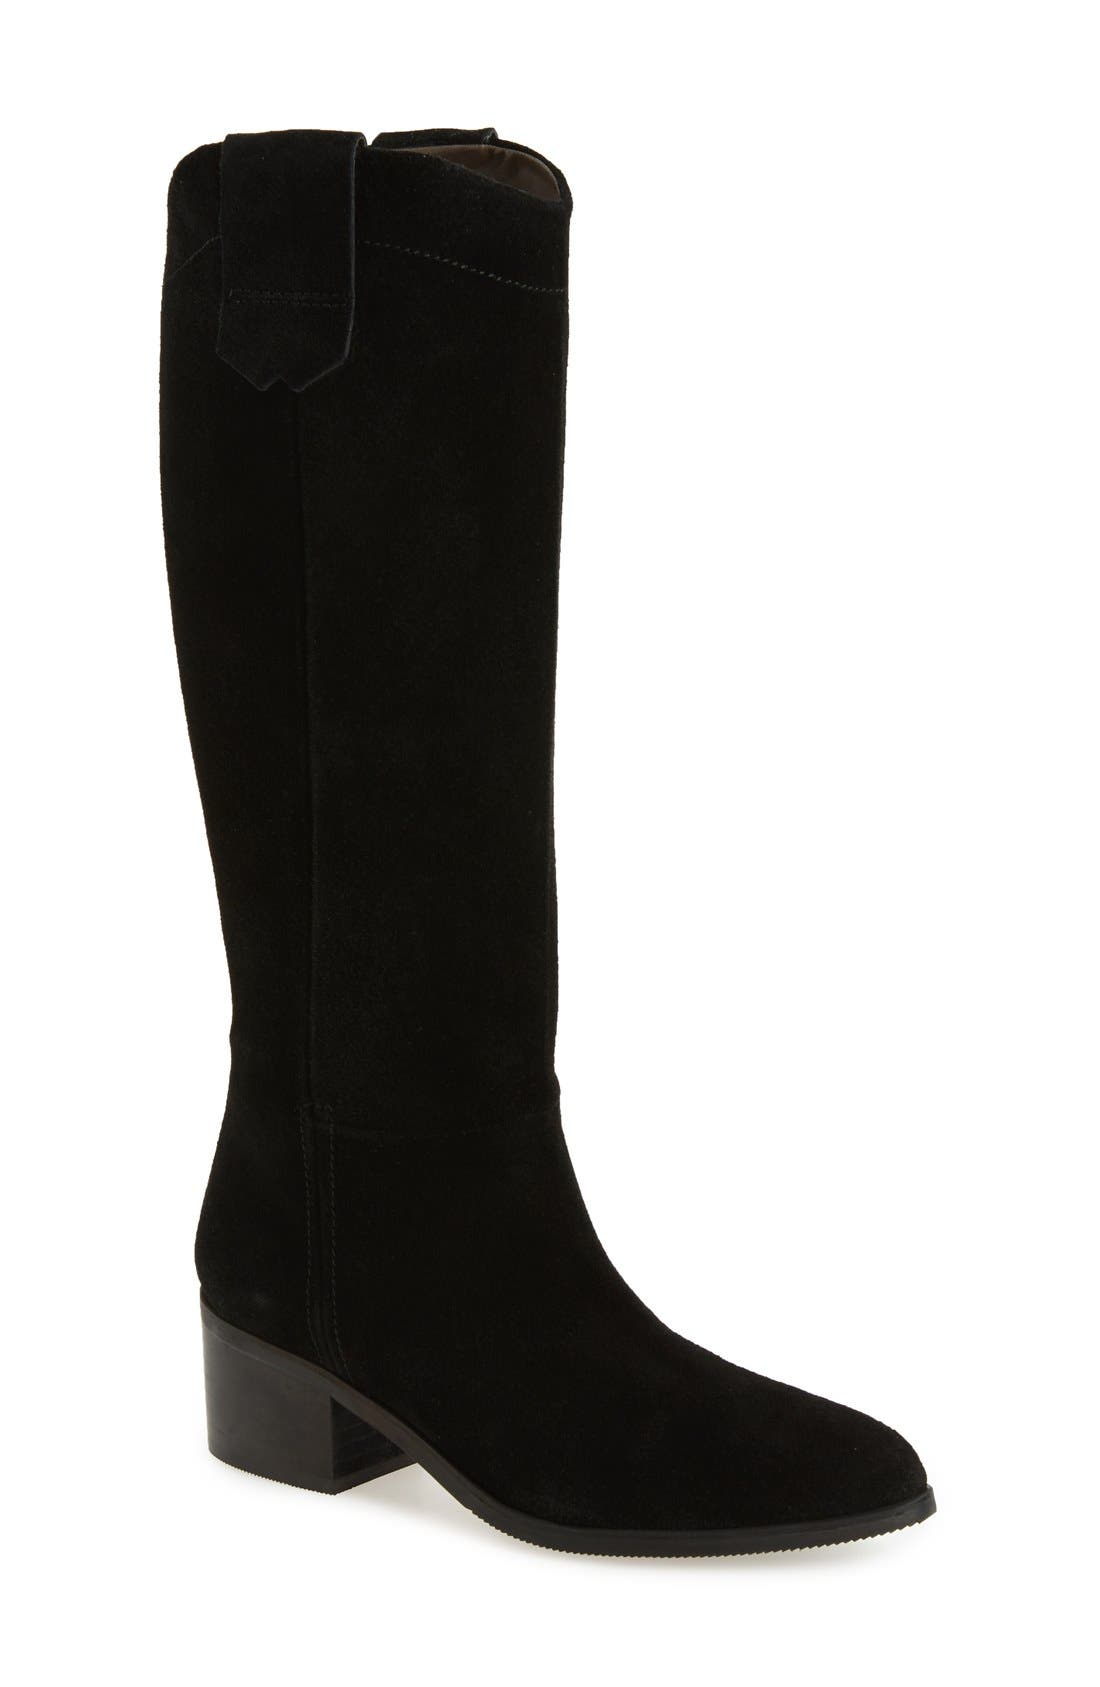 BELLA VITA Gia Tall Riding Boot